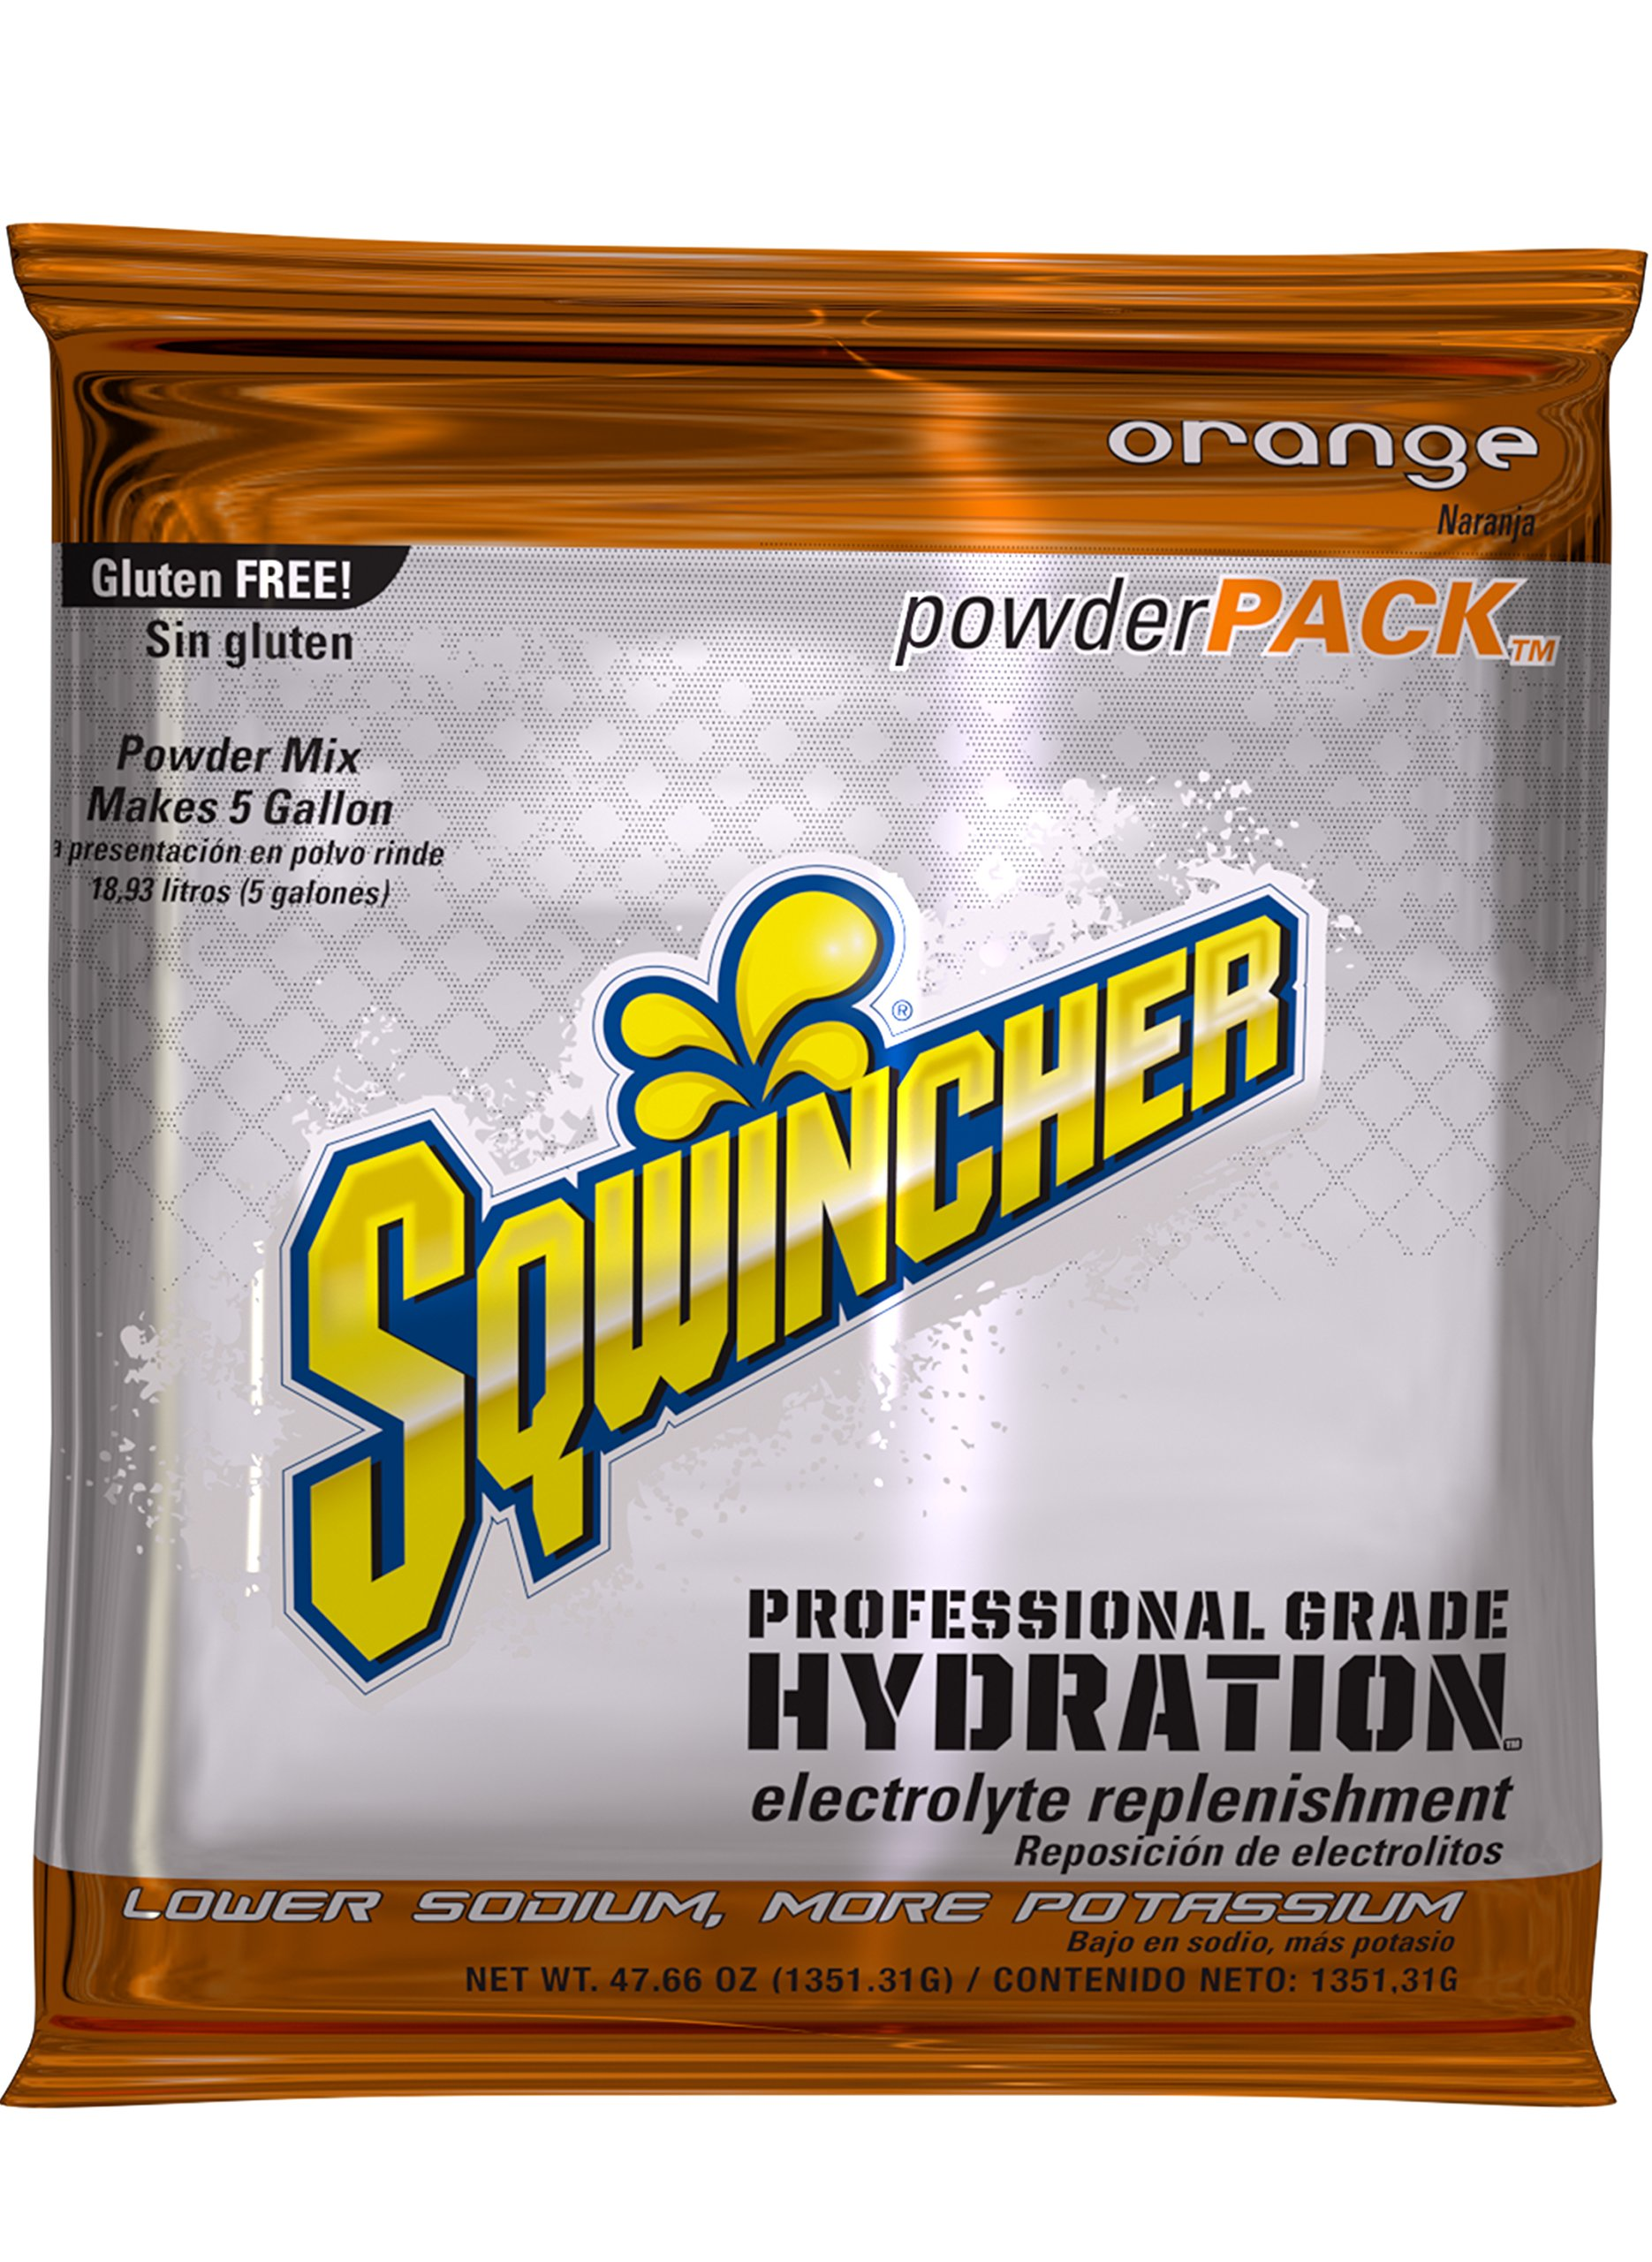 Sqwincher Powder Concentrate Electrolyte Replacement Beverage Mix, 5 gal, Orange 016404-OR (Pack of 16)